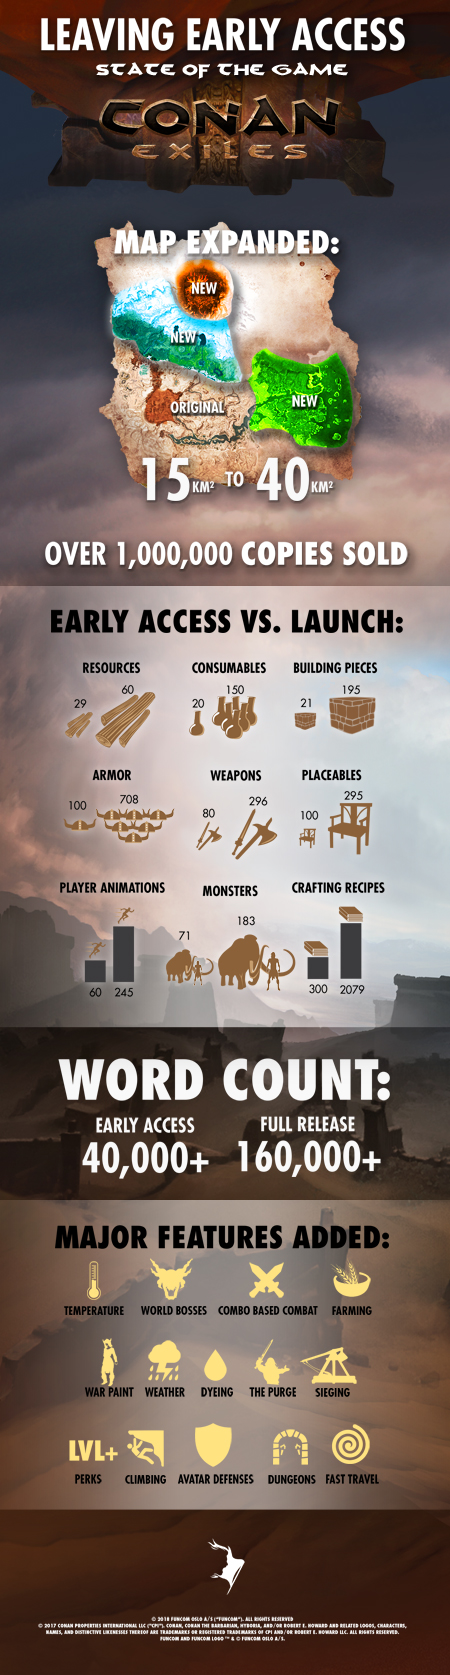 infographic_launch4-smaller.jpg